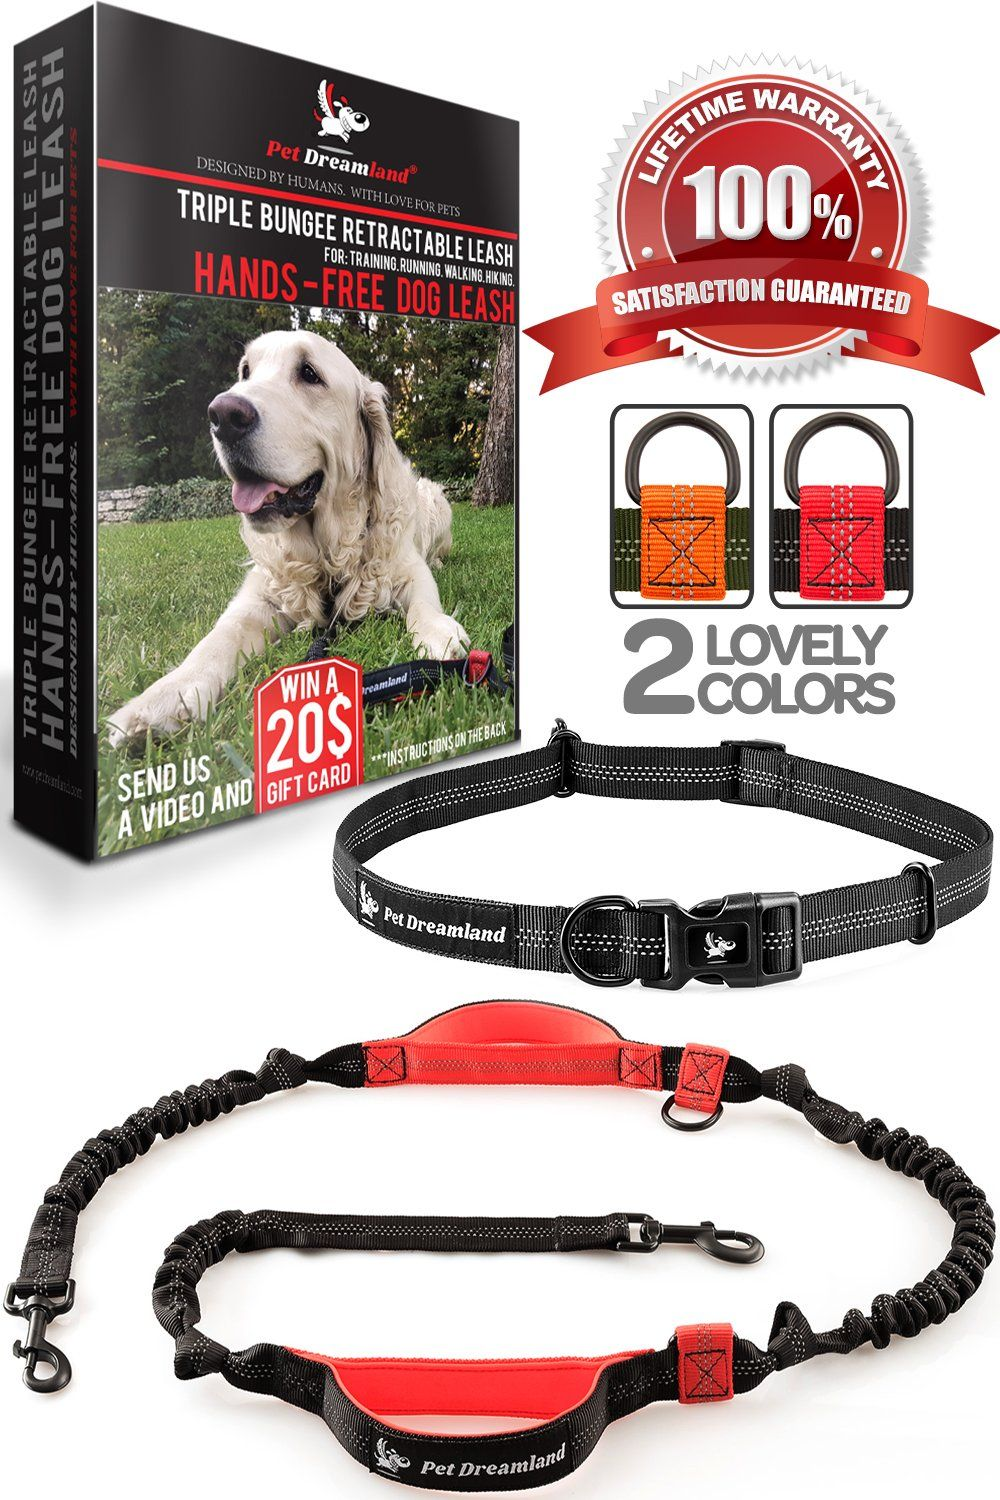 Pet Dreamland Dog Running Leash Hands Free For Medium To Large